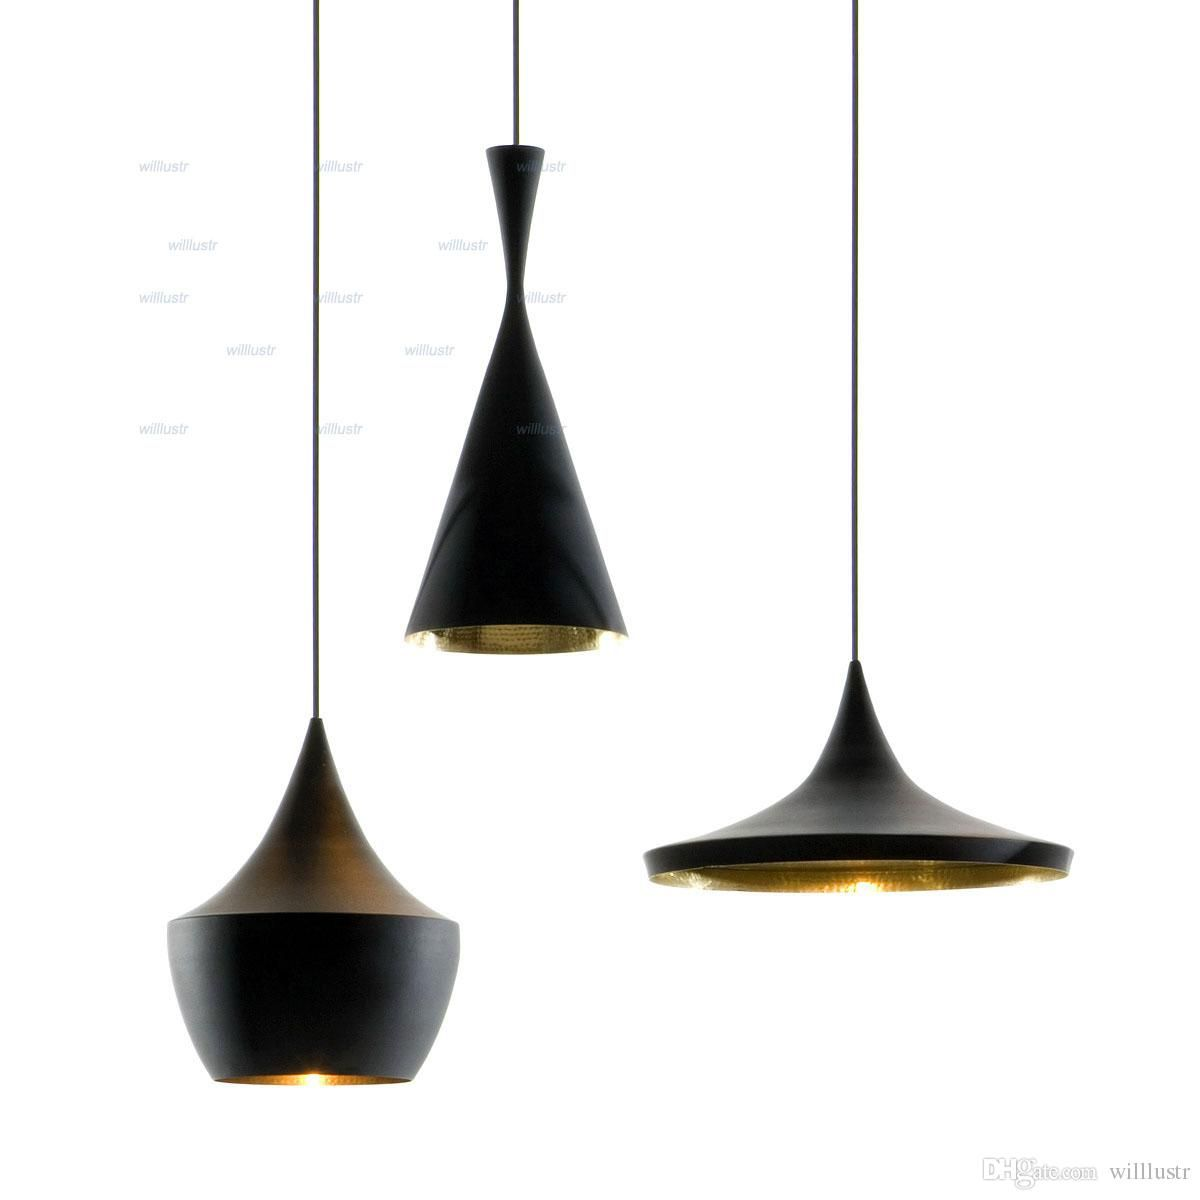 Tom dixon beat light set tall fat wide 3 lamps pendant lamp tom dixon beat light set tall fat wide 3 lamps pendant lamp ceiling light suspension lighting chandelier living room dinning room aloadofball Choice Image